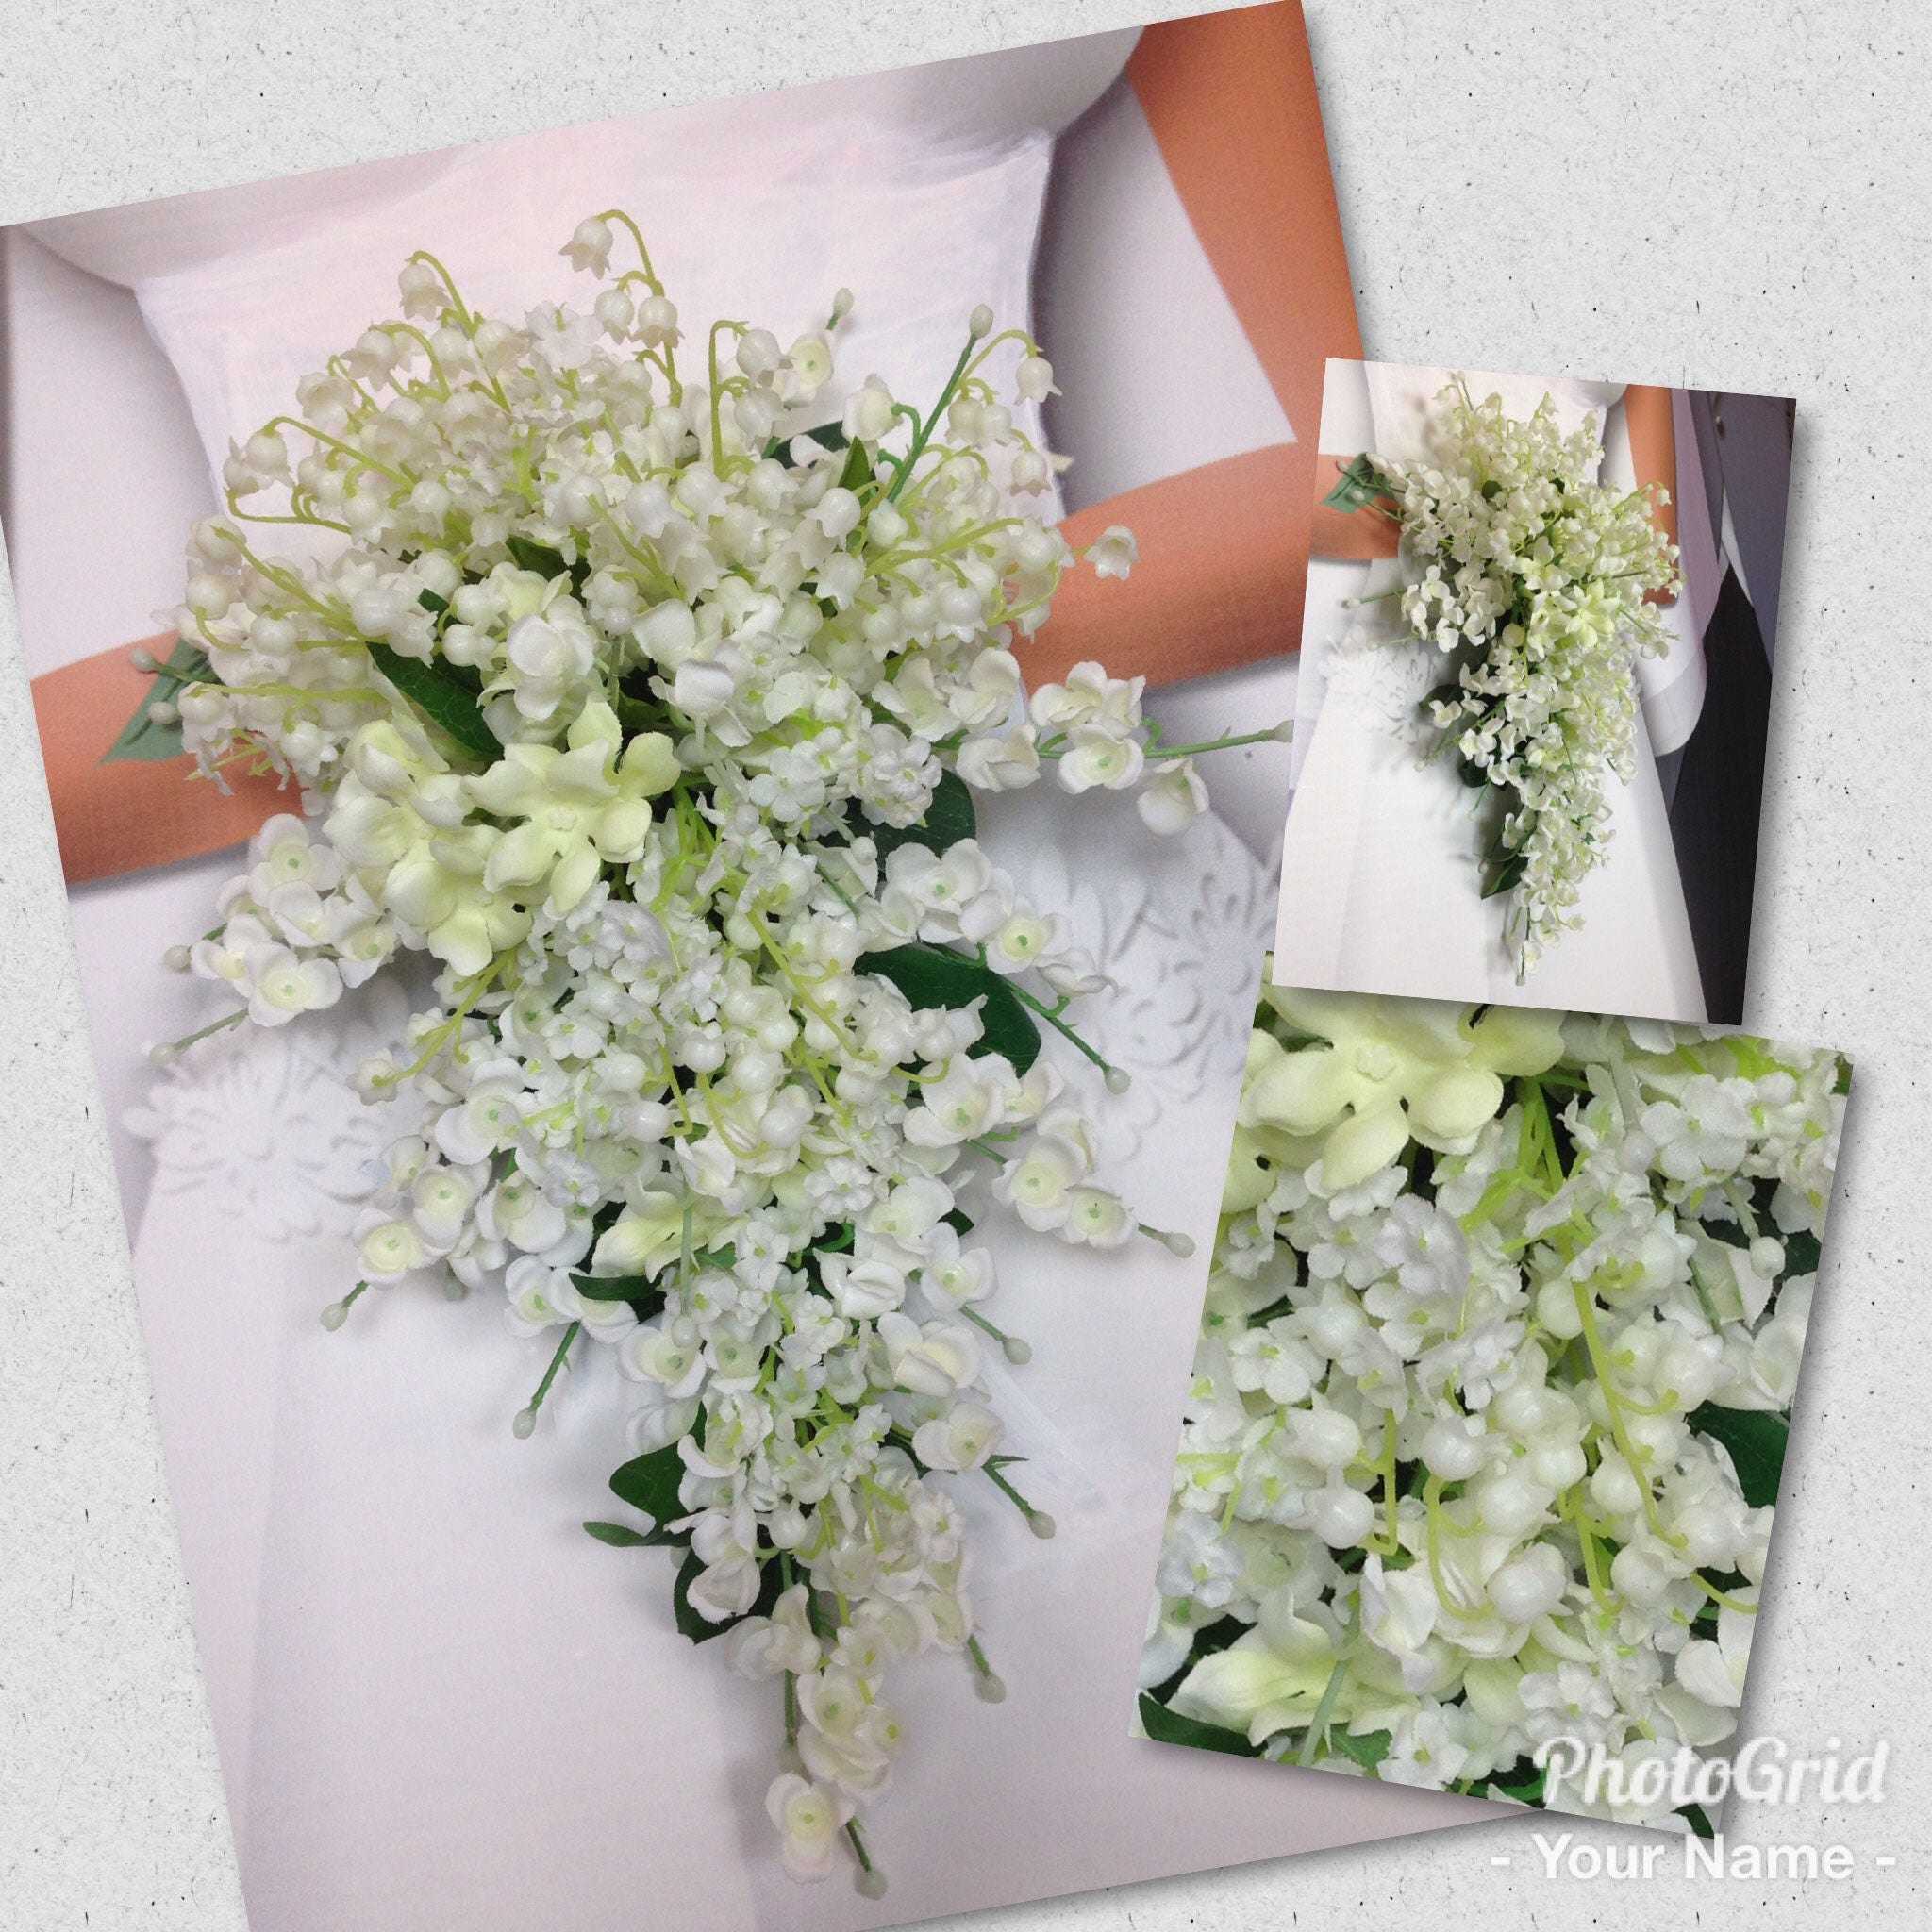 Custom princess kates wedding bouquet lily of the valley bouquet custom princess kates wedding bouquet lily of the valley bouquet lily of the valley nosegay lily of the valley boutonnieres izmirmasajfo Image collections